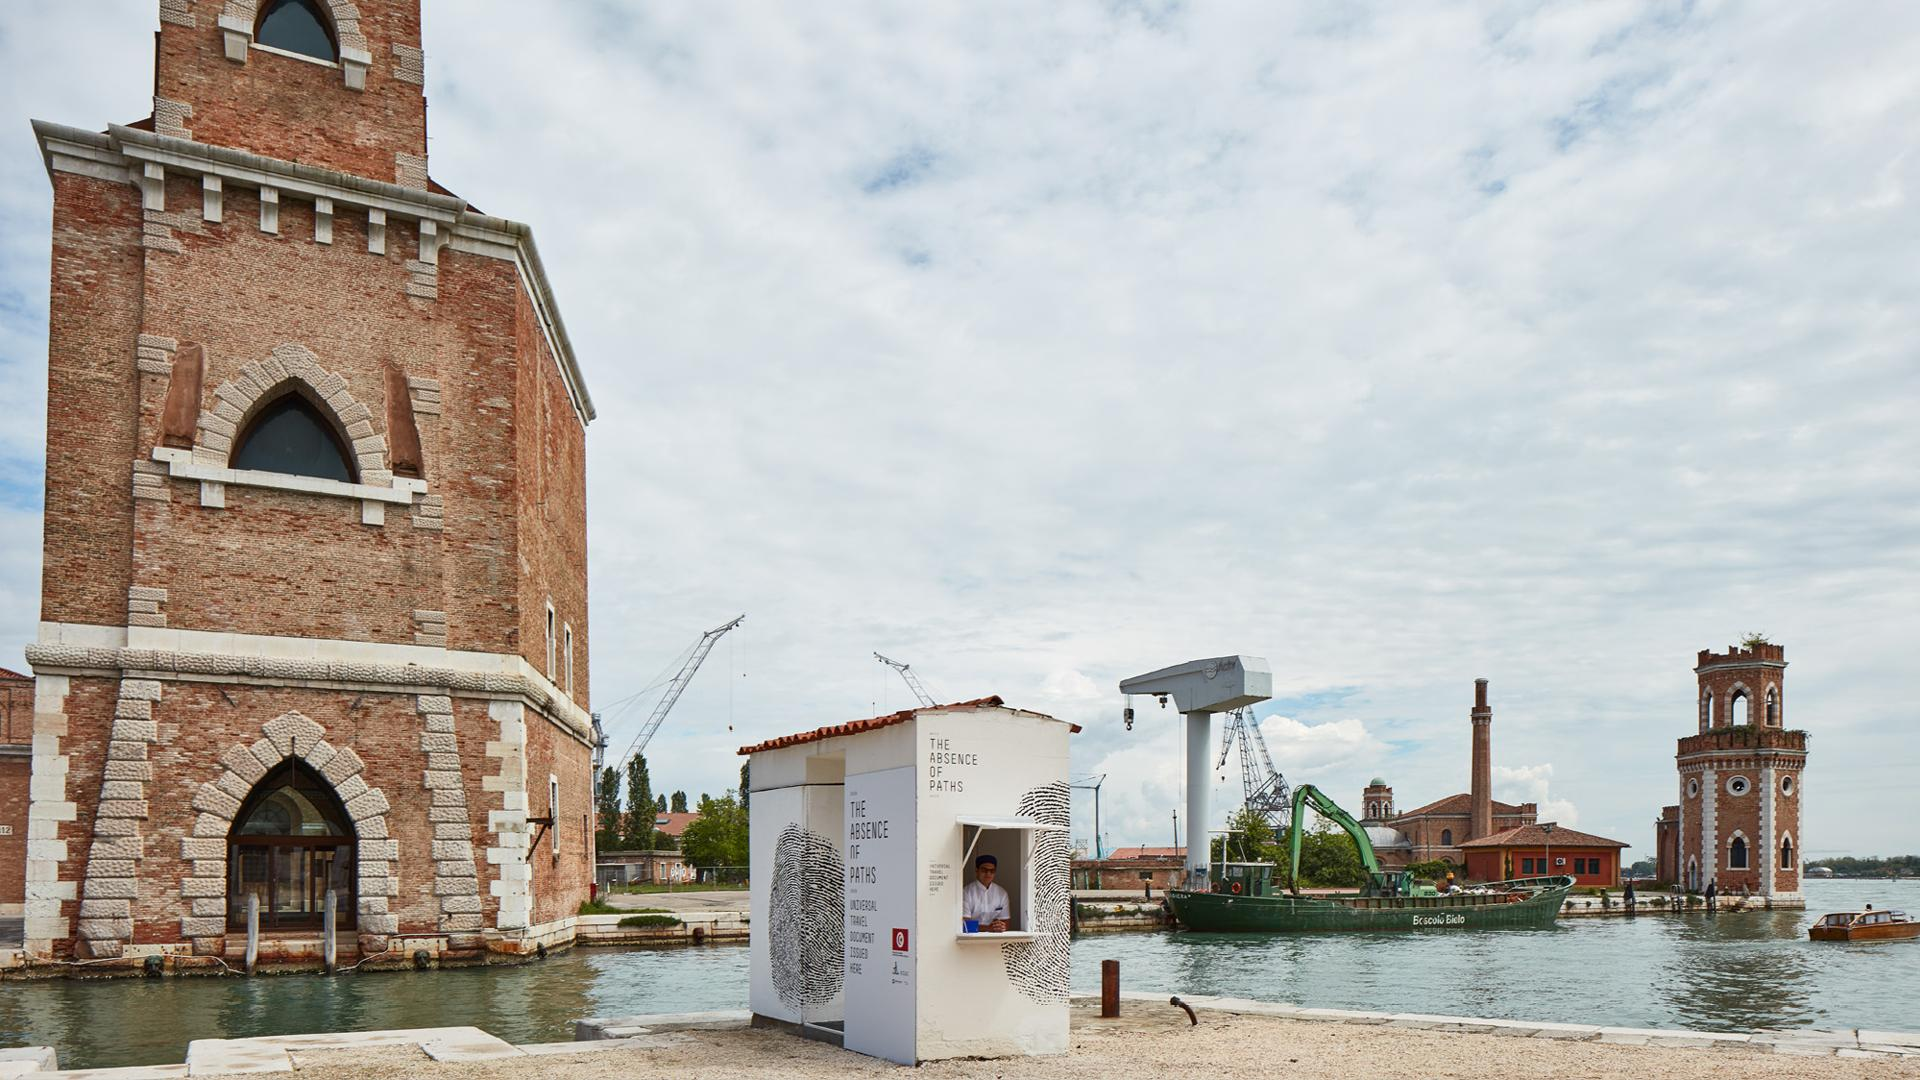 Installation view of The Tunisian Pavilion 'The Absence of Paths' at the 57th Venice Biennale. Photography by Luke Walker.